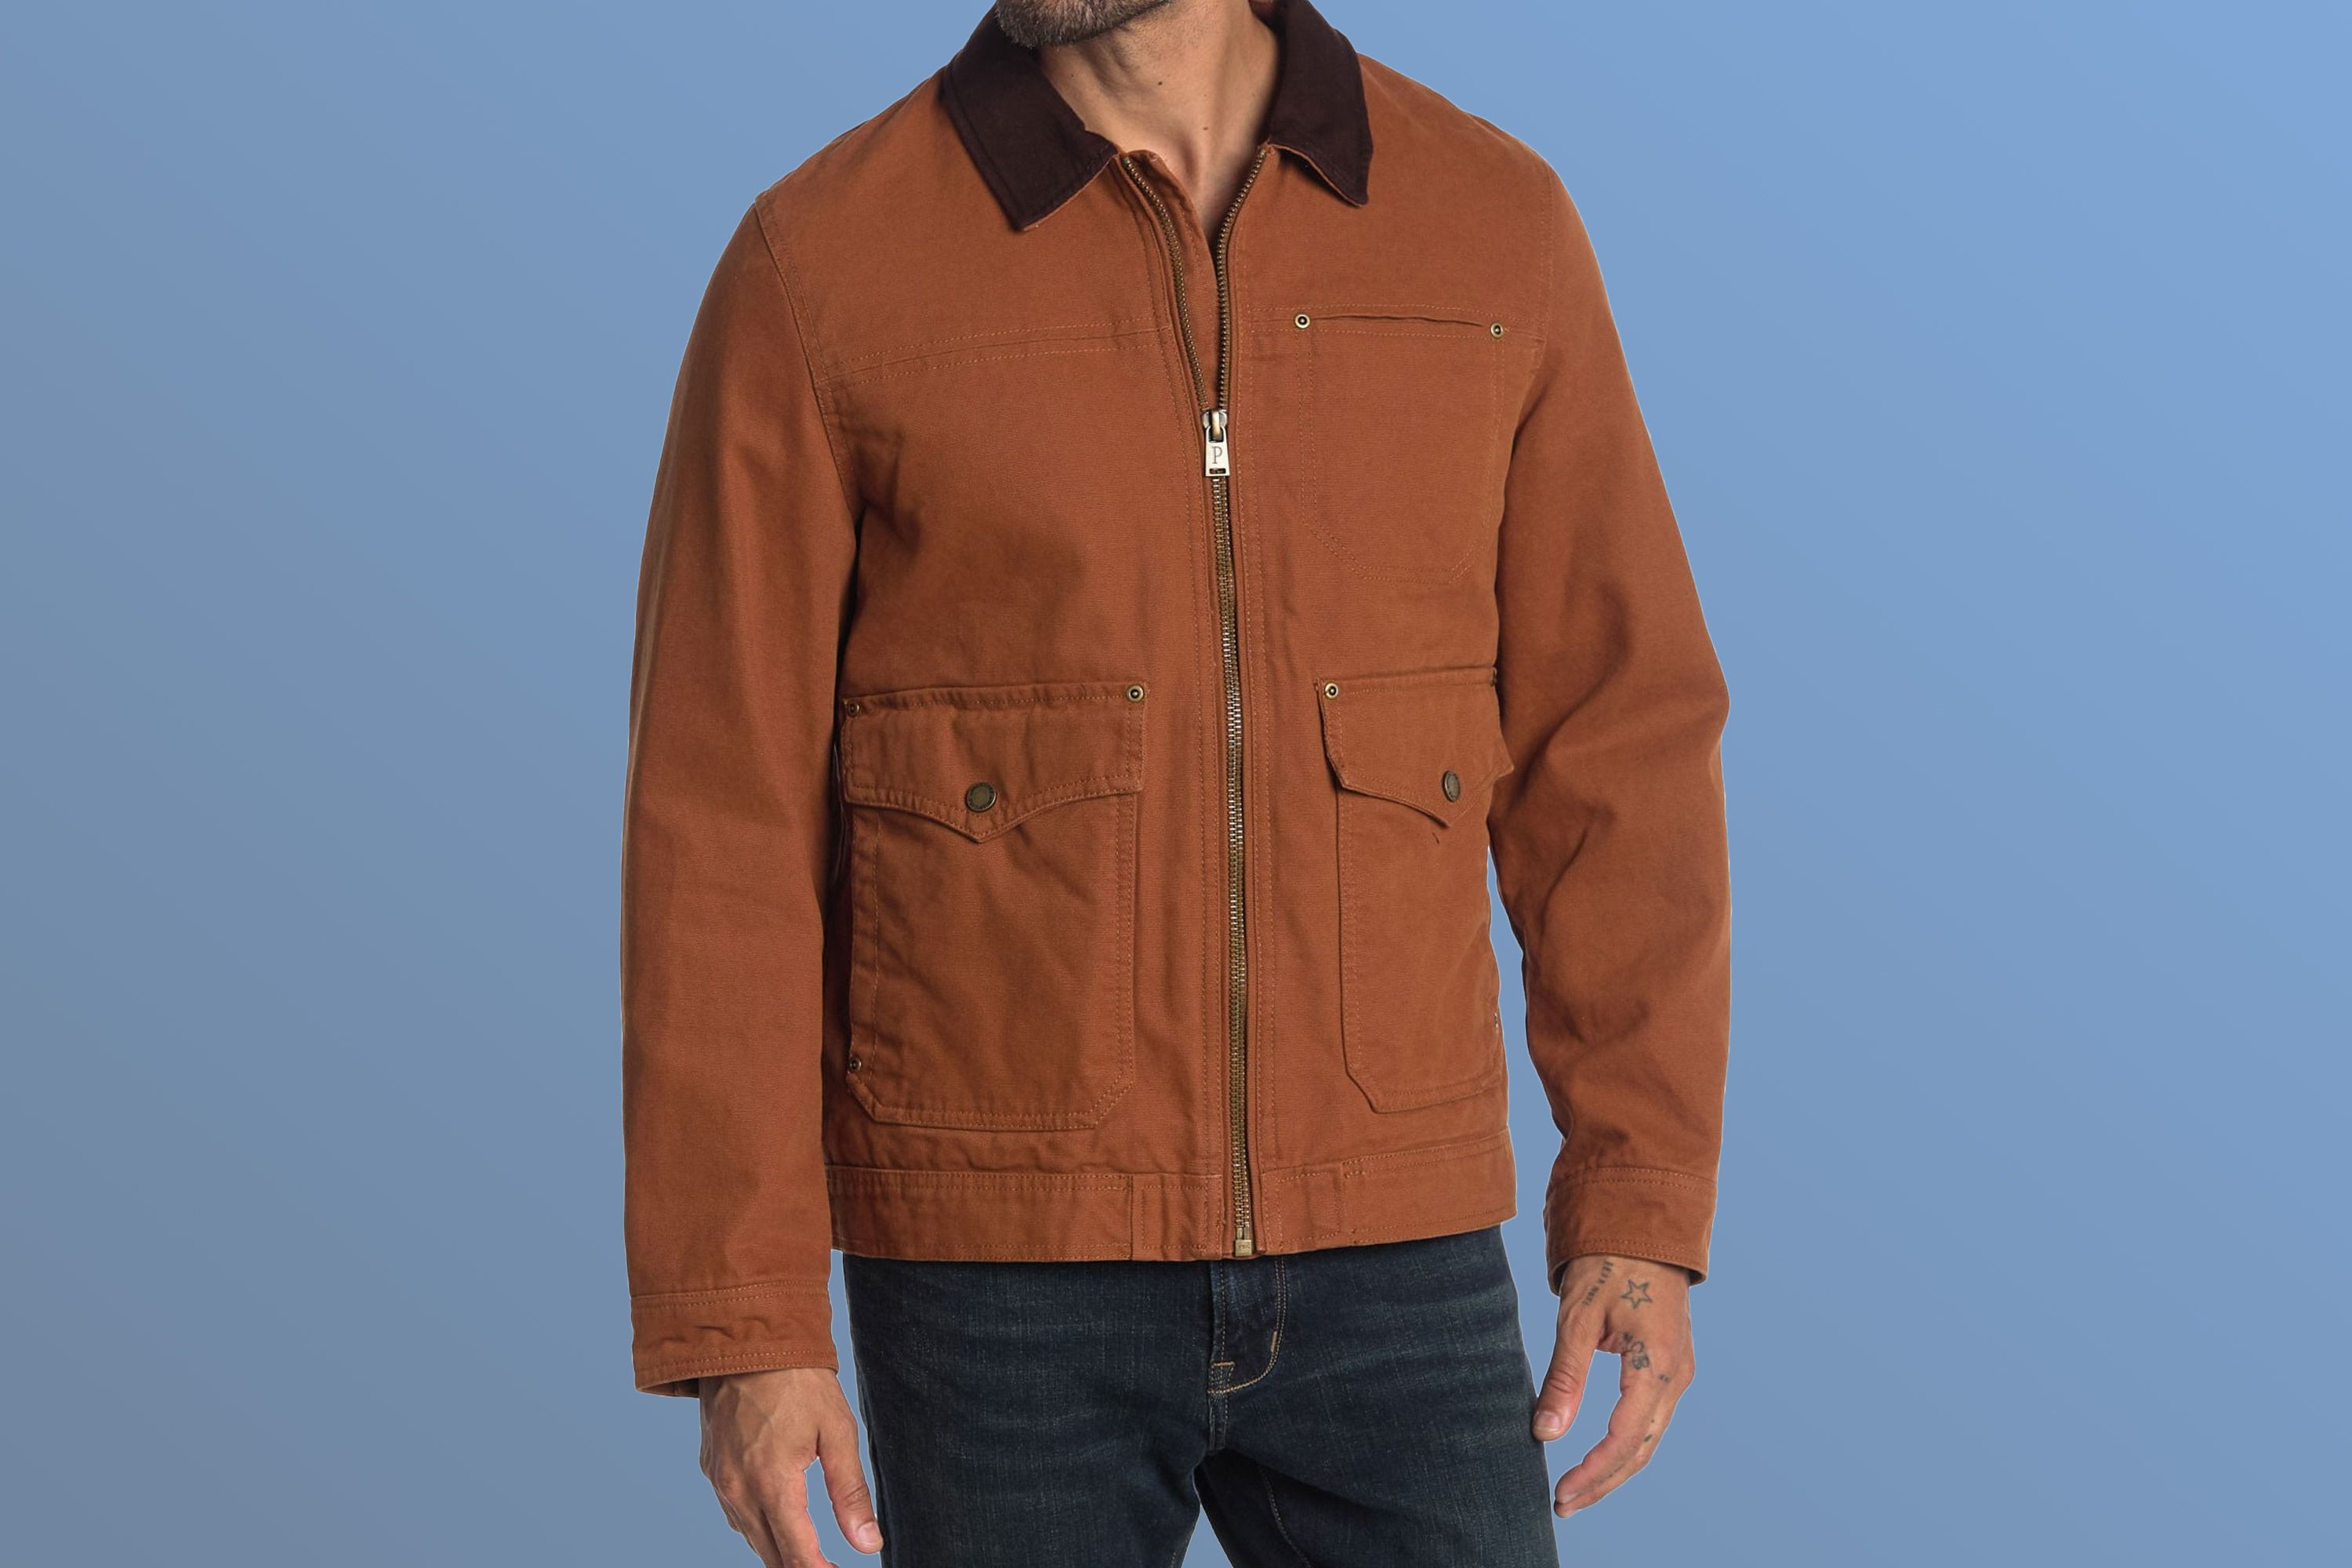 pendleton jackets are up to 50 off